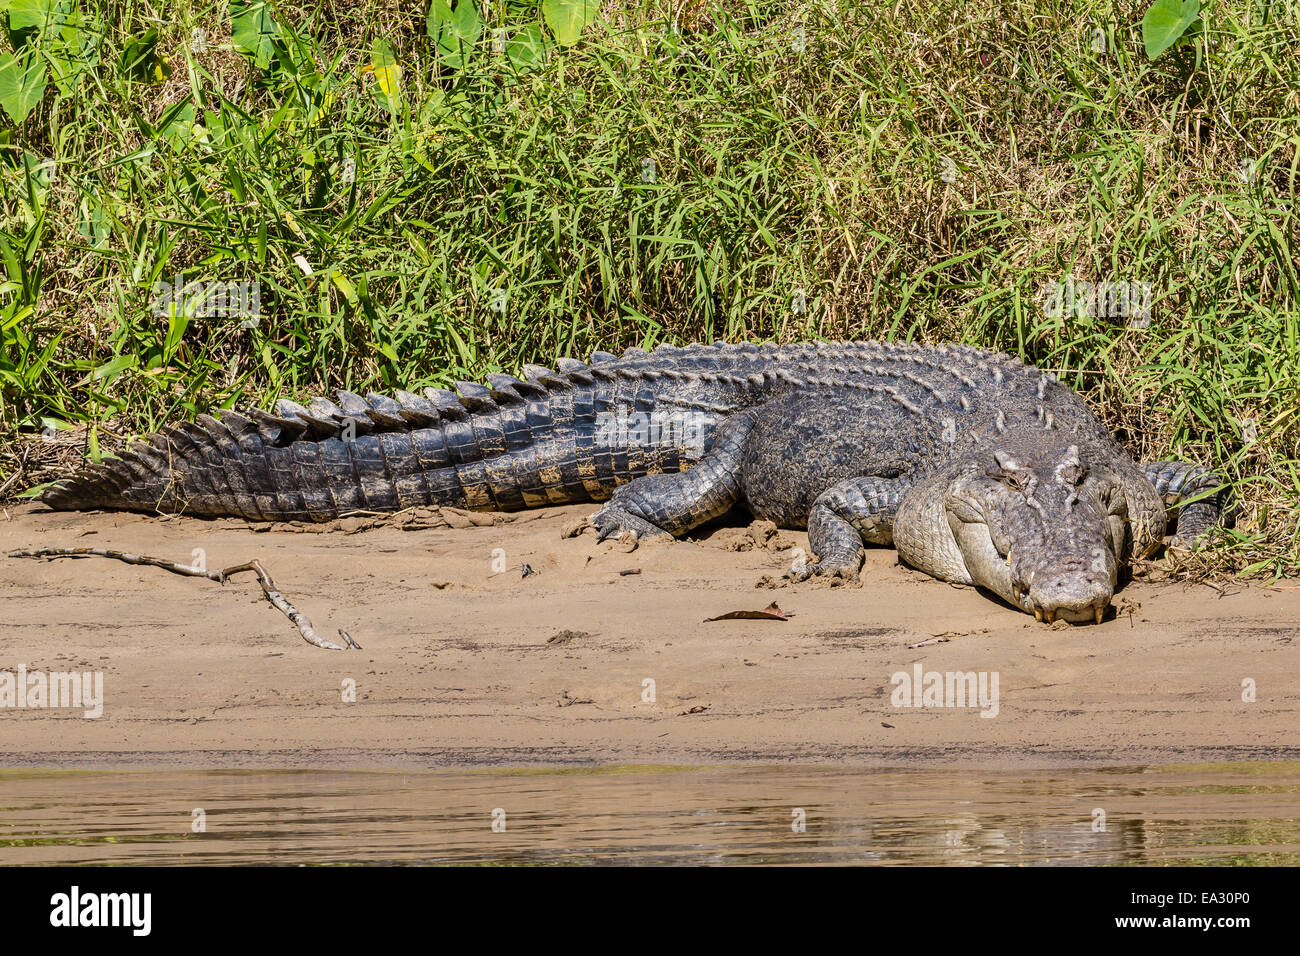 Adult saltwater crocodile (Crocodylus porosus), on the banks of the Daintree River, Daintree rain forest, Queensland, - Stock Image